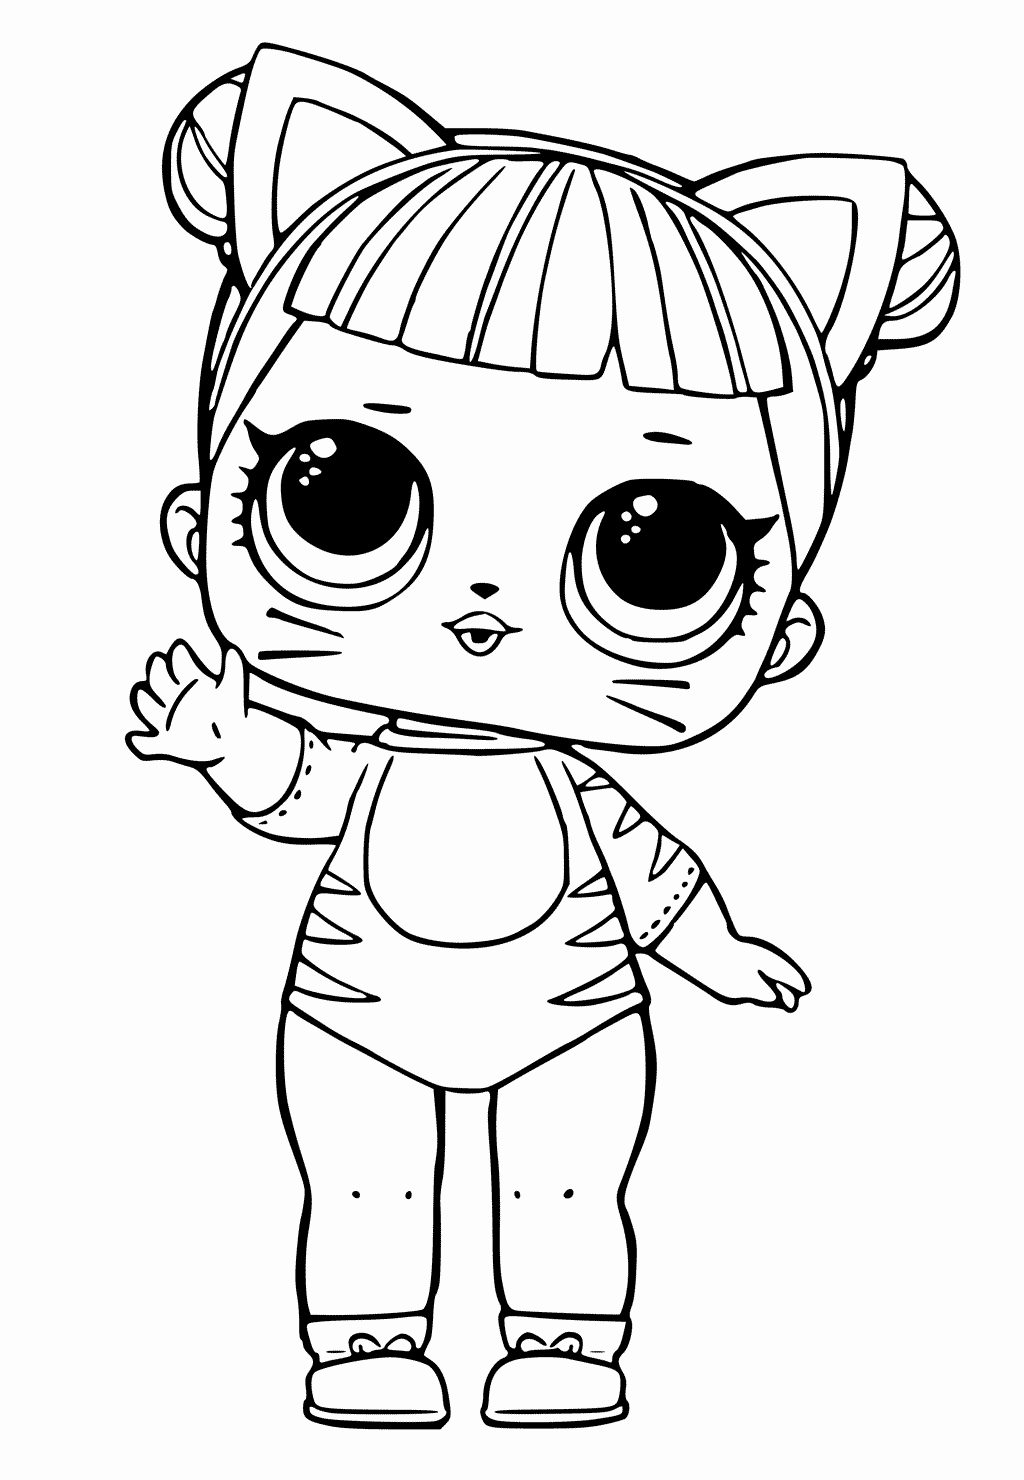 Coloring Pages ~ Amazing Baby Alive Coloring Sheets Printable